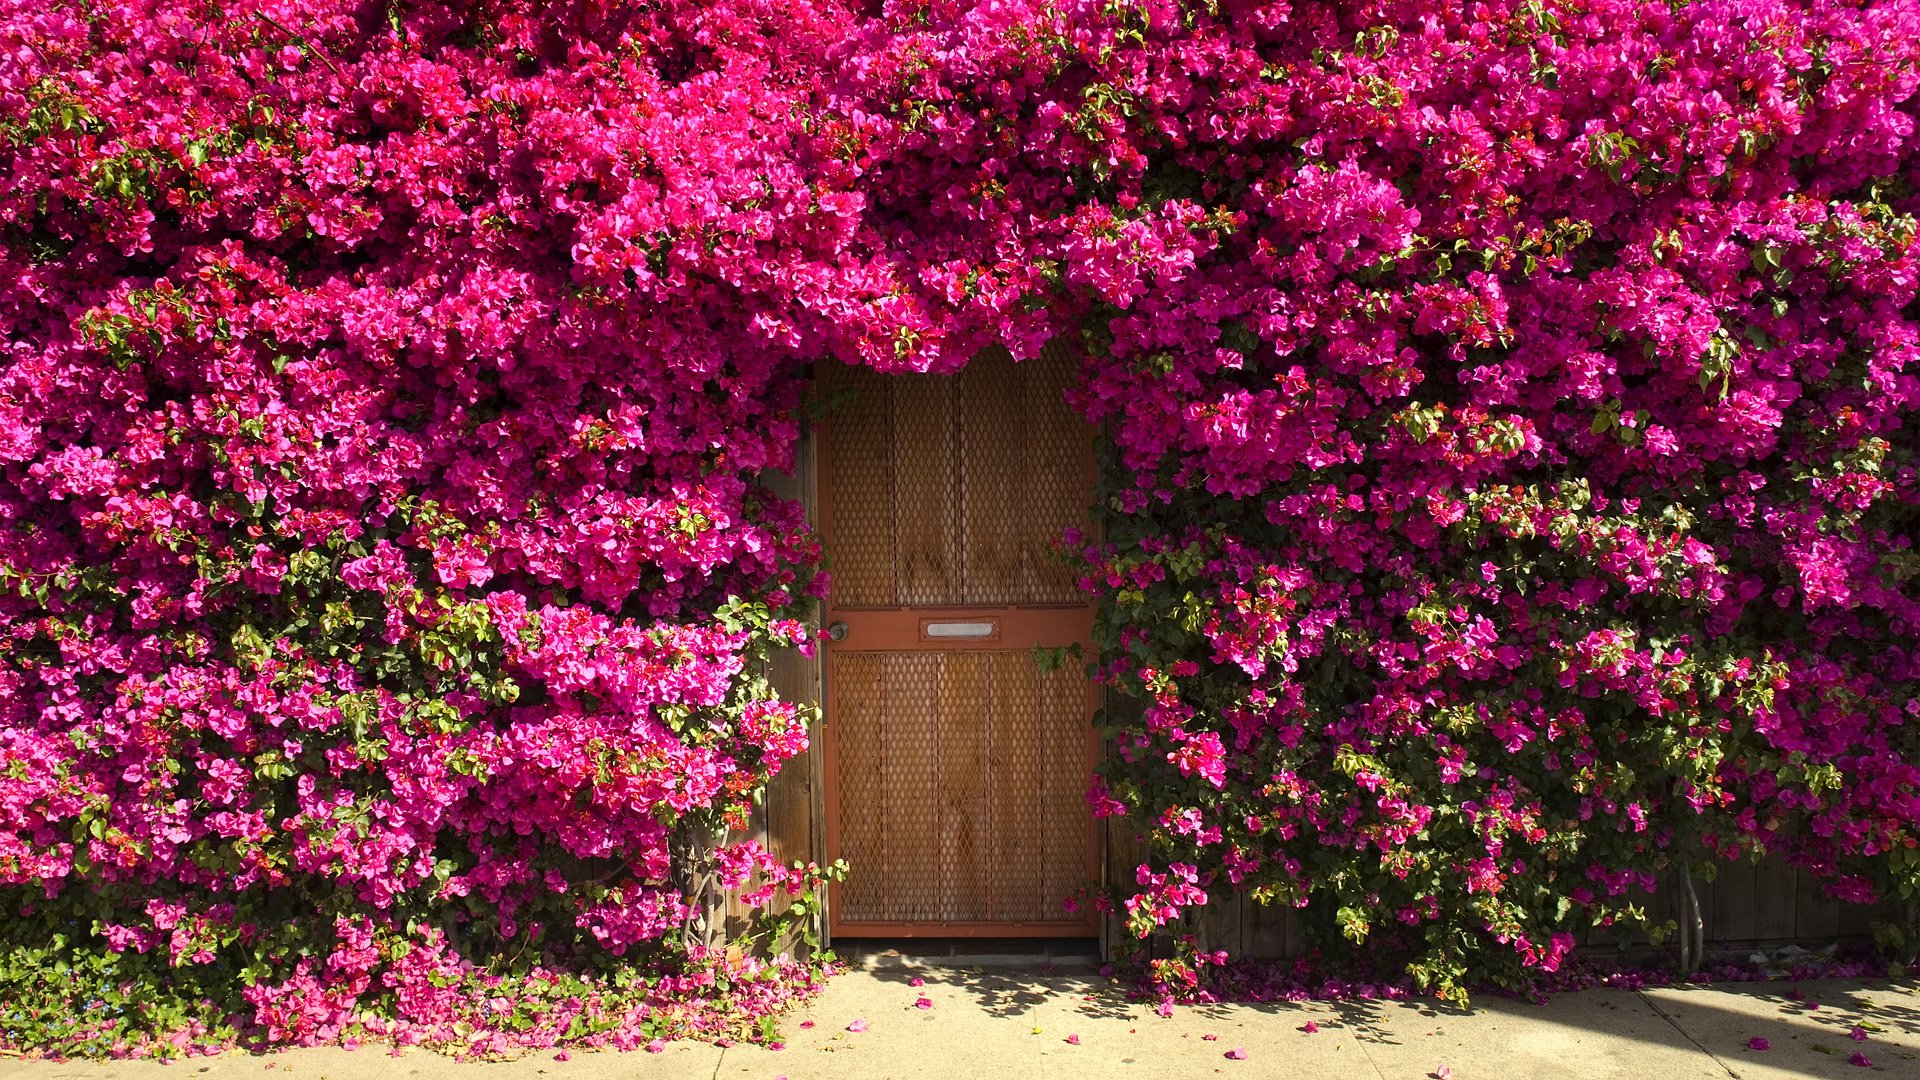 Bougainvillea Wallpaper Bougainvillea Around Door Of House Hd Wallpaper Background Image